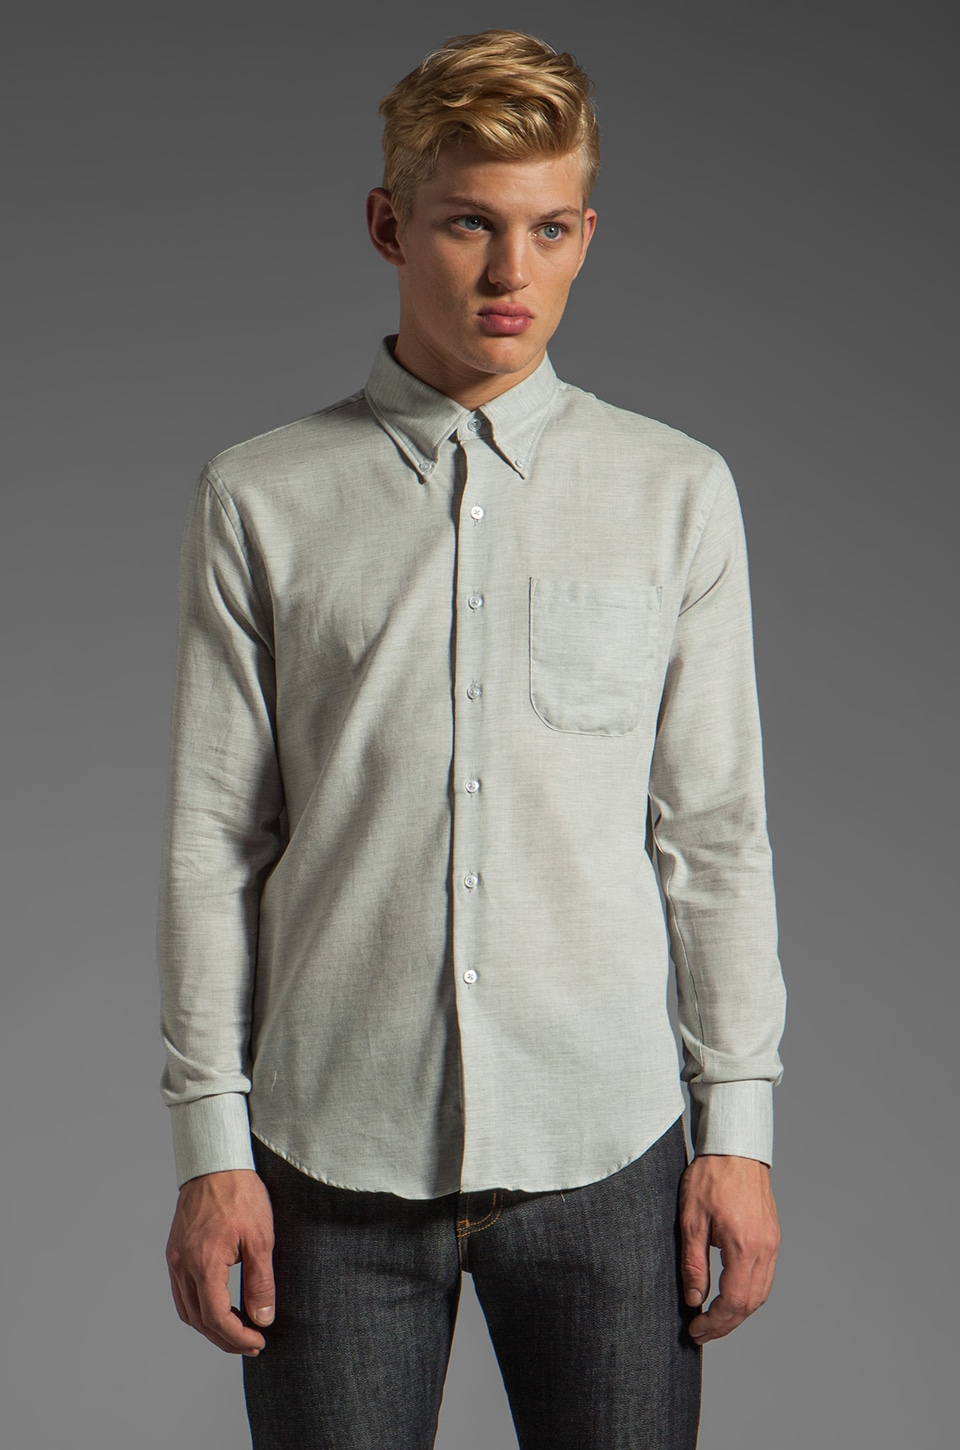 Naked & Famous Denim Slim Shirt 4 oz in Grey Twill Air